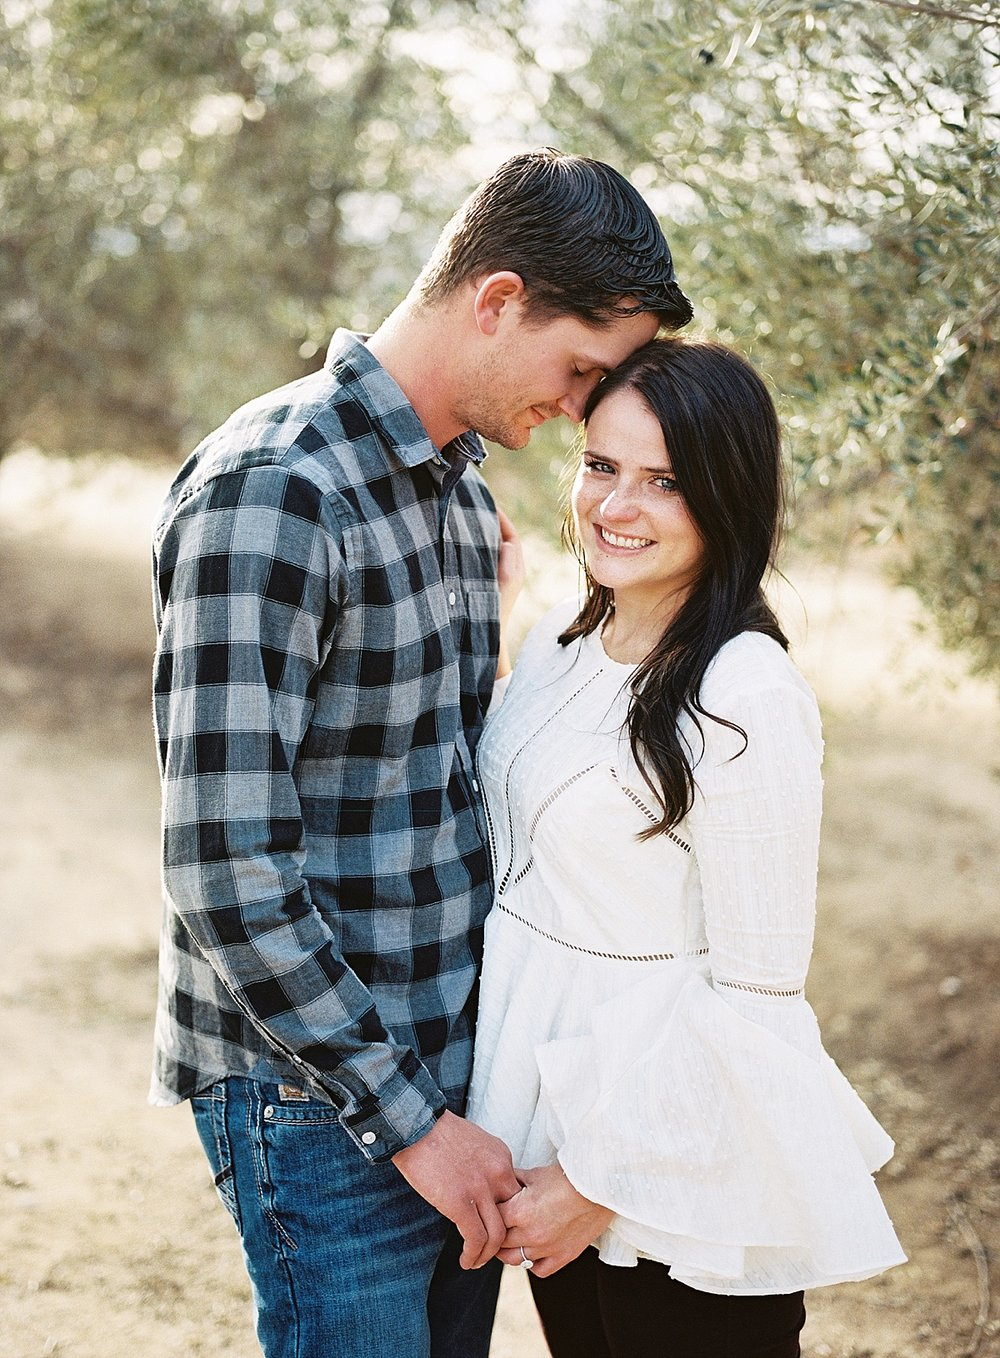 temecula-vineyard-engagement-proposal_0018.jpg